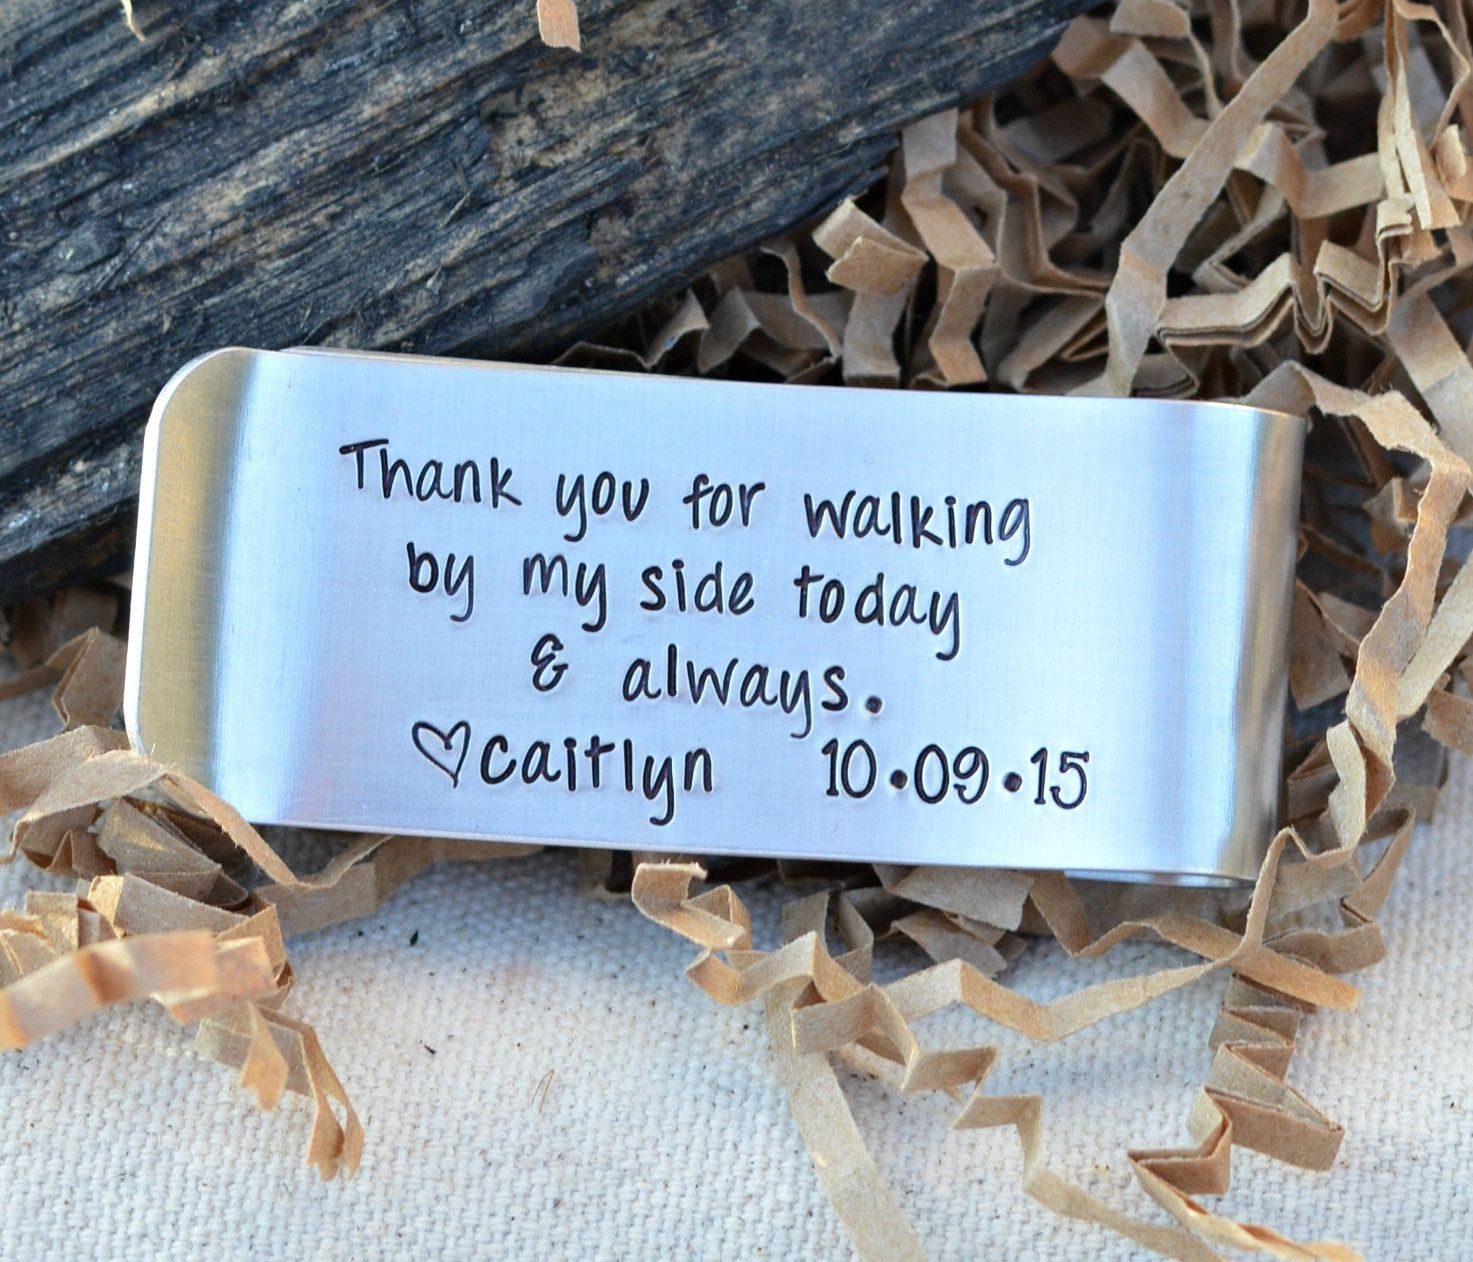 Average Cost Of Wedding Gift: This Money Clip Is Dedicated To The Father Of The Bride